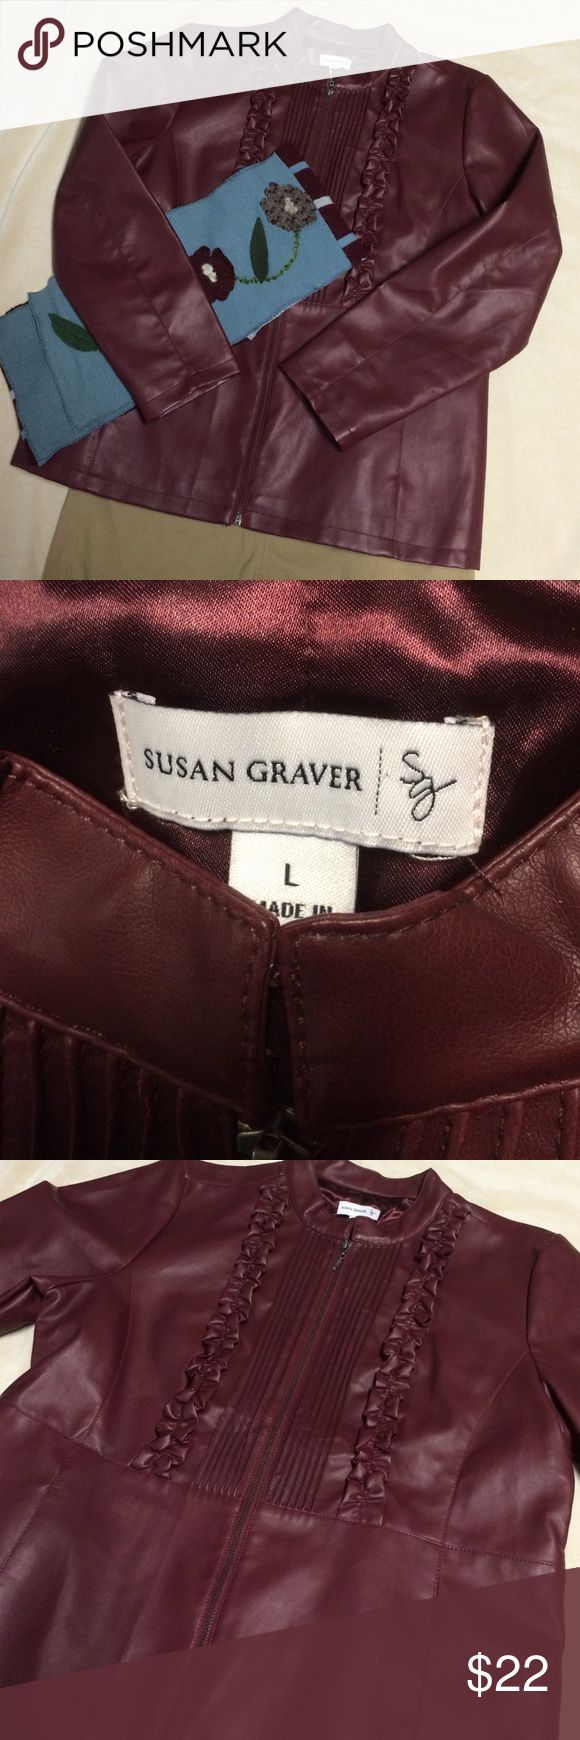 Susan Graver faux leather jacket Perfect condition!  Super cute, satin lining!  Wear to the office or around town! Susan Graver Jackets & Coats